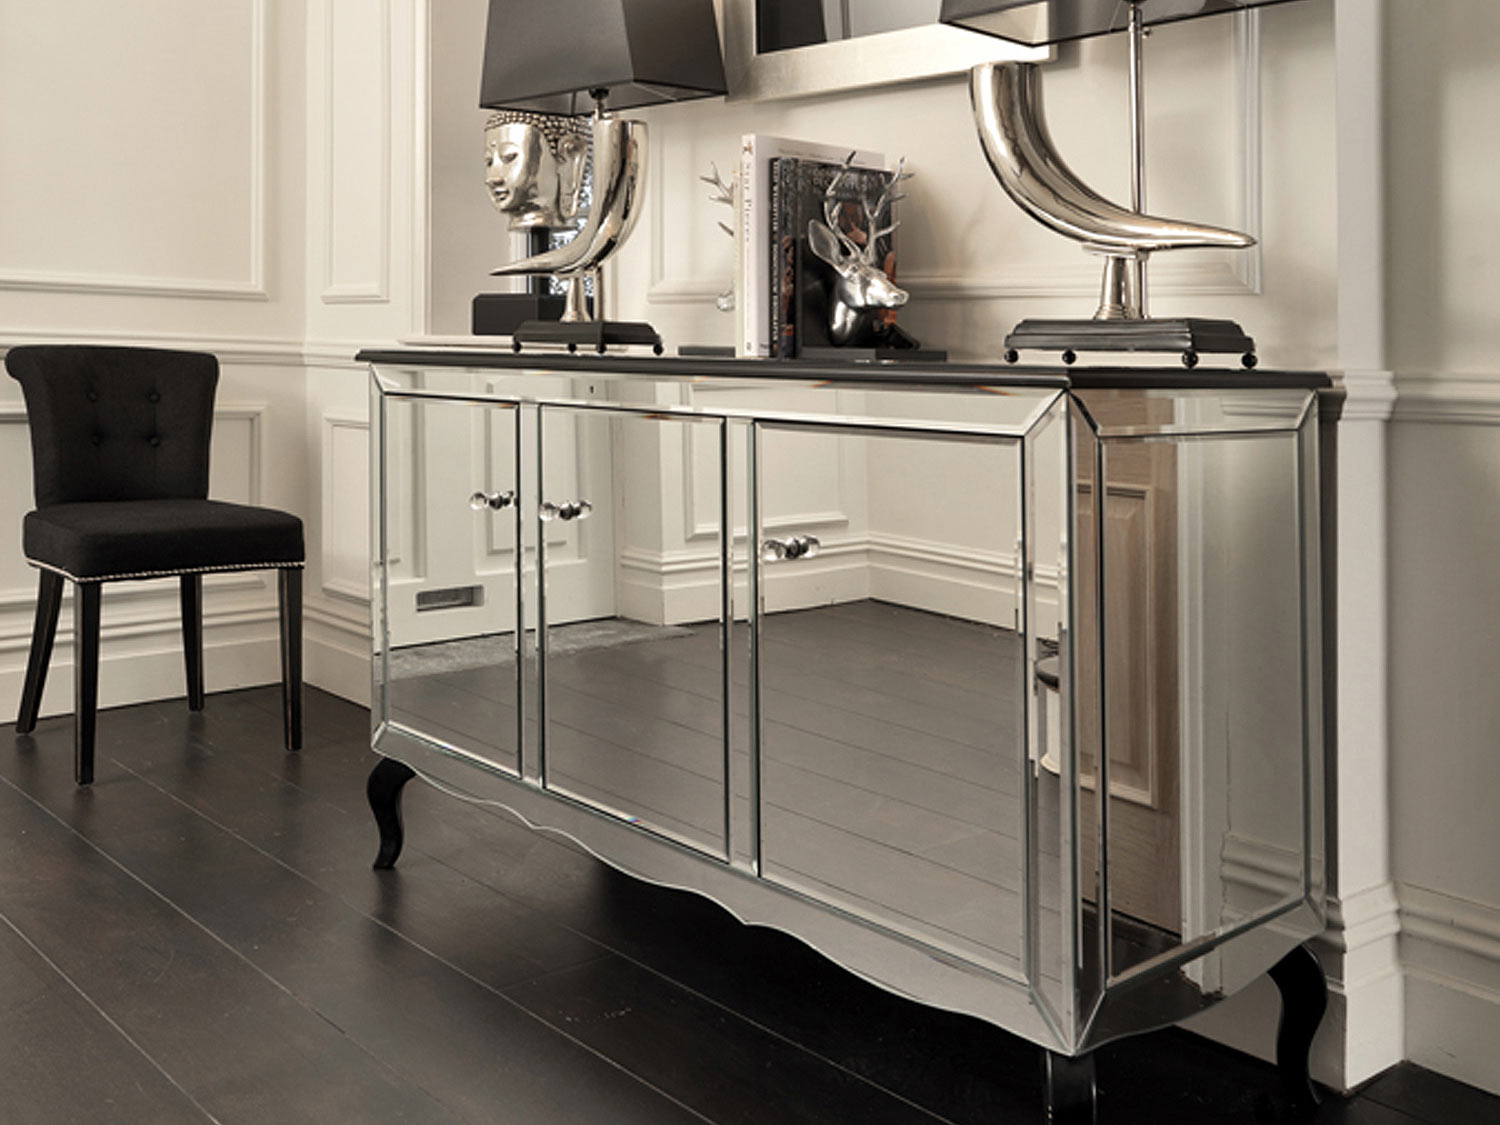 Alluring mirrored sideboard with knobs silver color and with decorative pattern design mirrored sideboard ideas